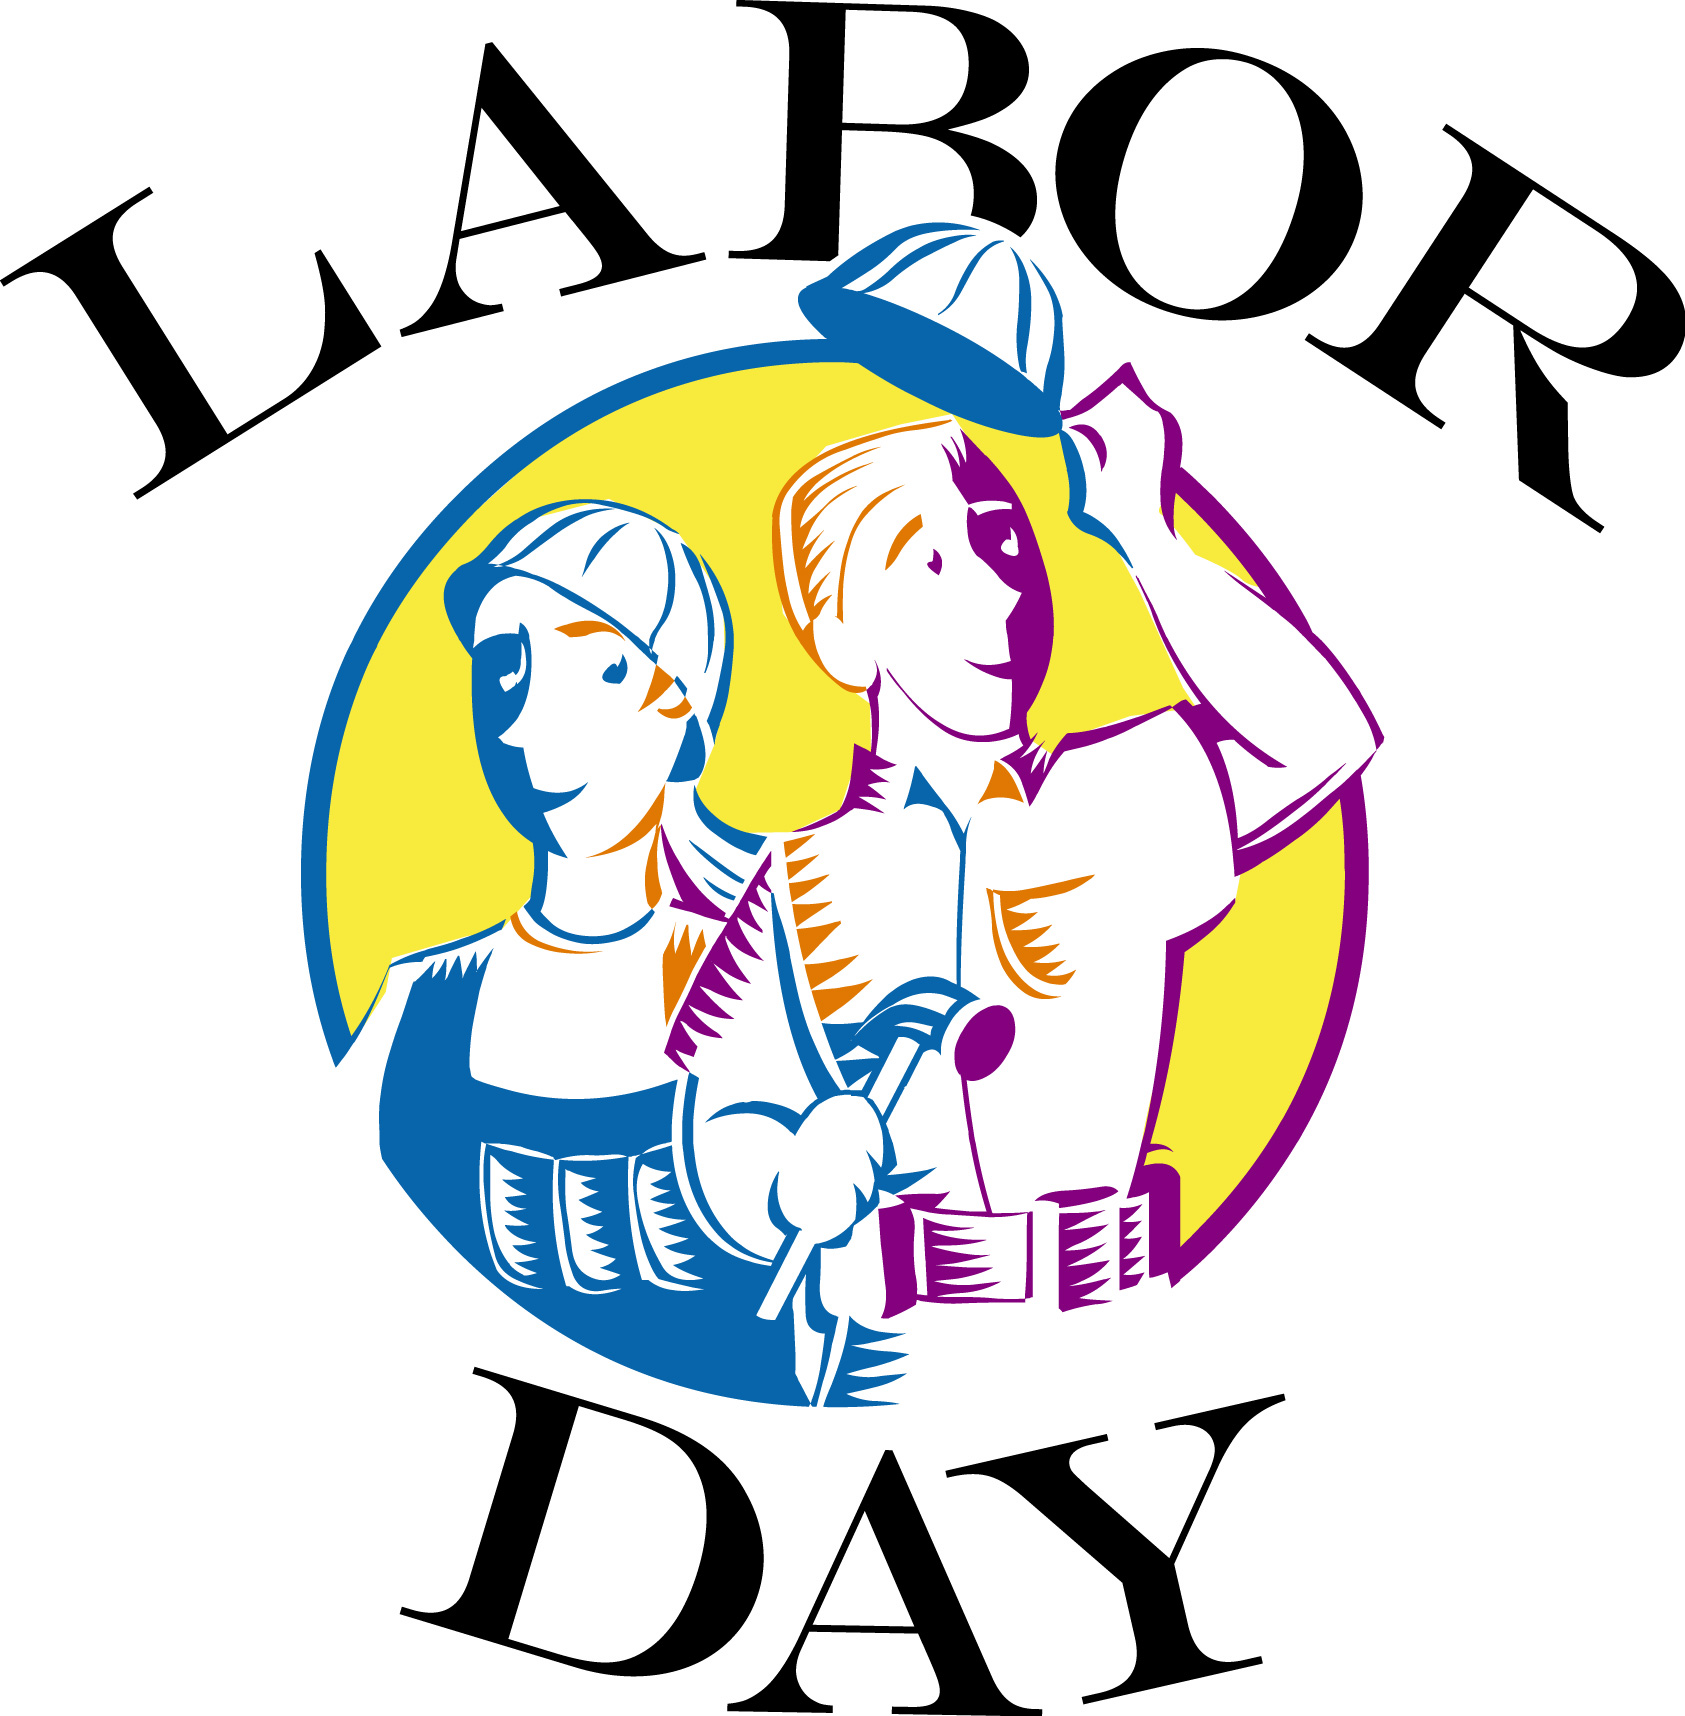 labor day drawing at getdrawings com free for personal use labor rh getdrawings com labor day clip art images free labor day clip art 2017